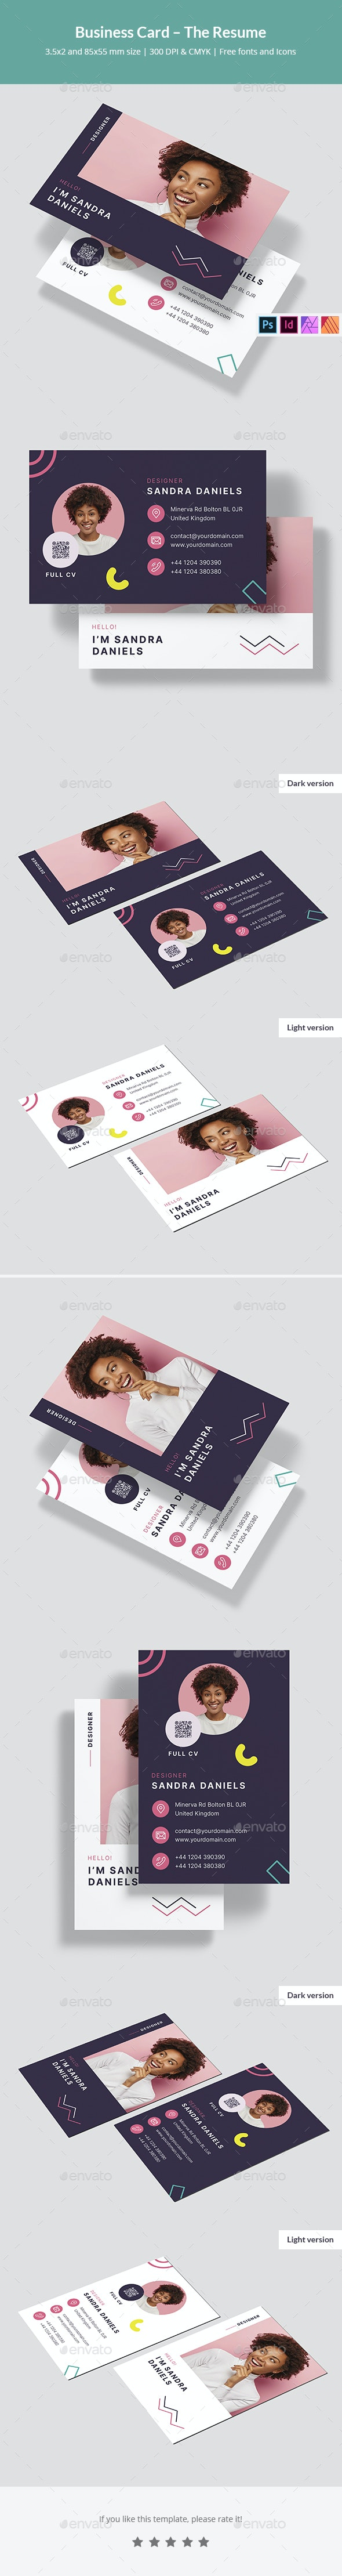 Business Card – The Resume - Creative Business Cards